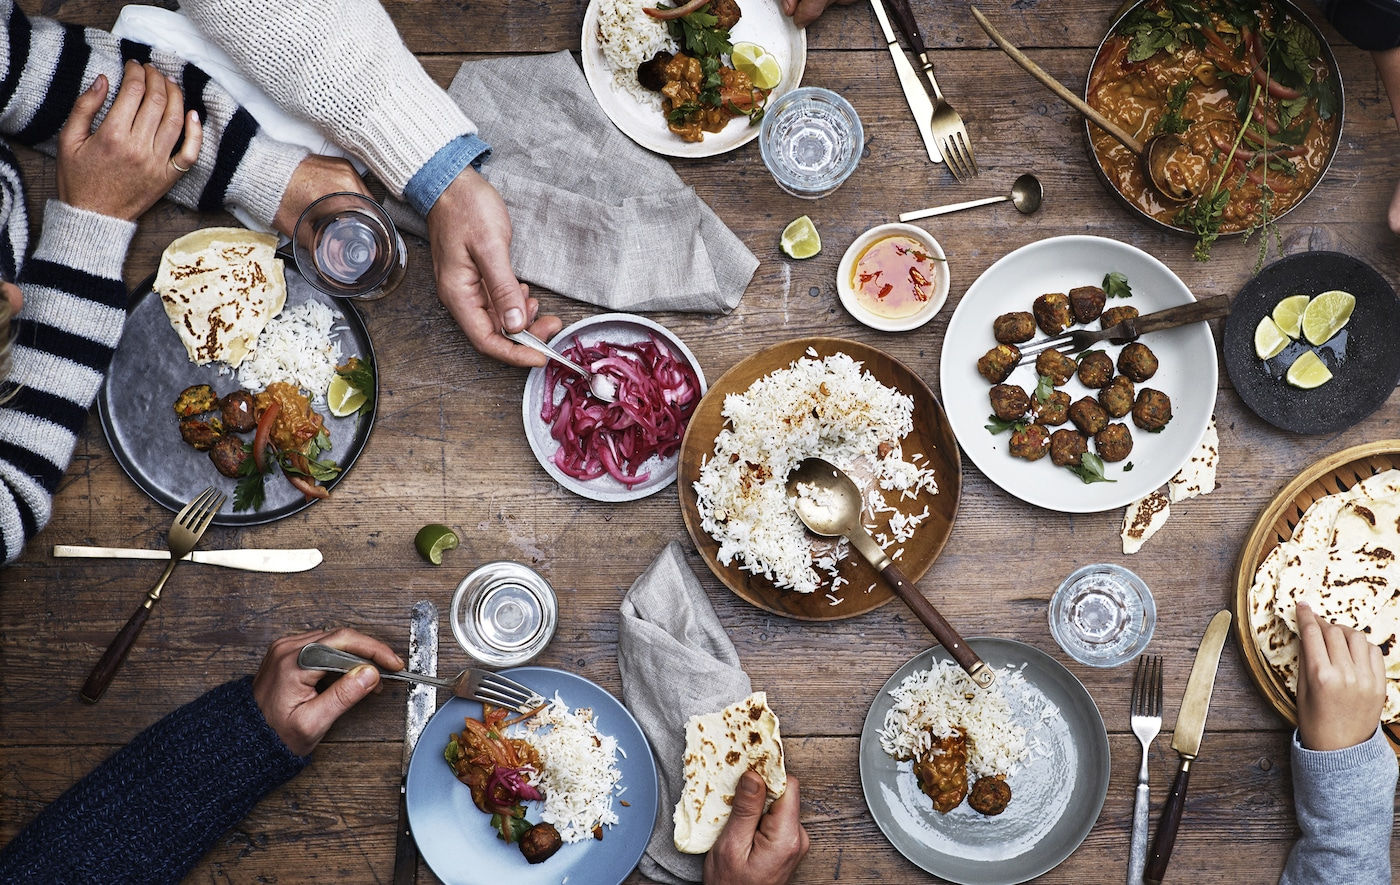 Table setting with meatballs, rice and pickles on a wooden table with cutlery and hands serving.